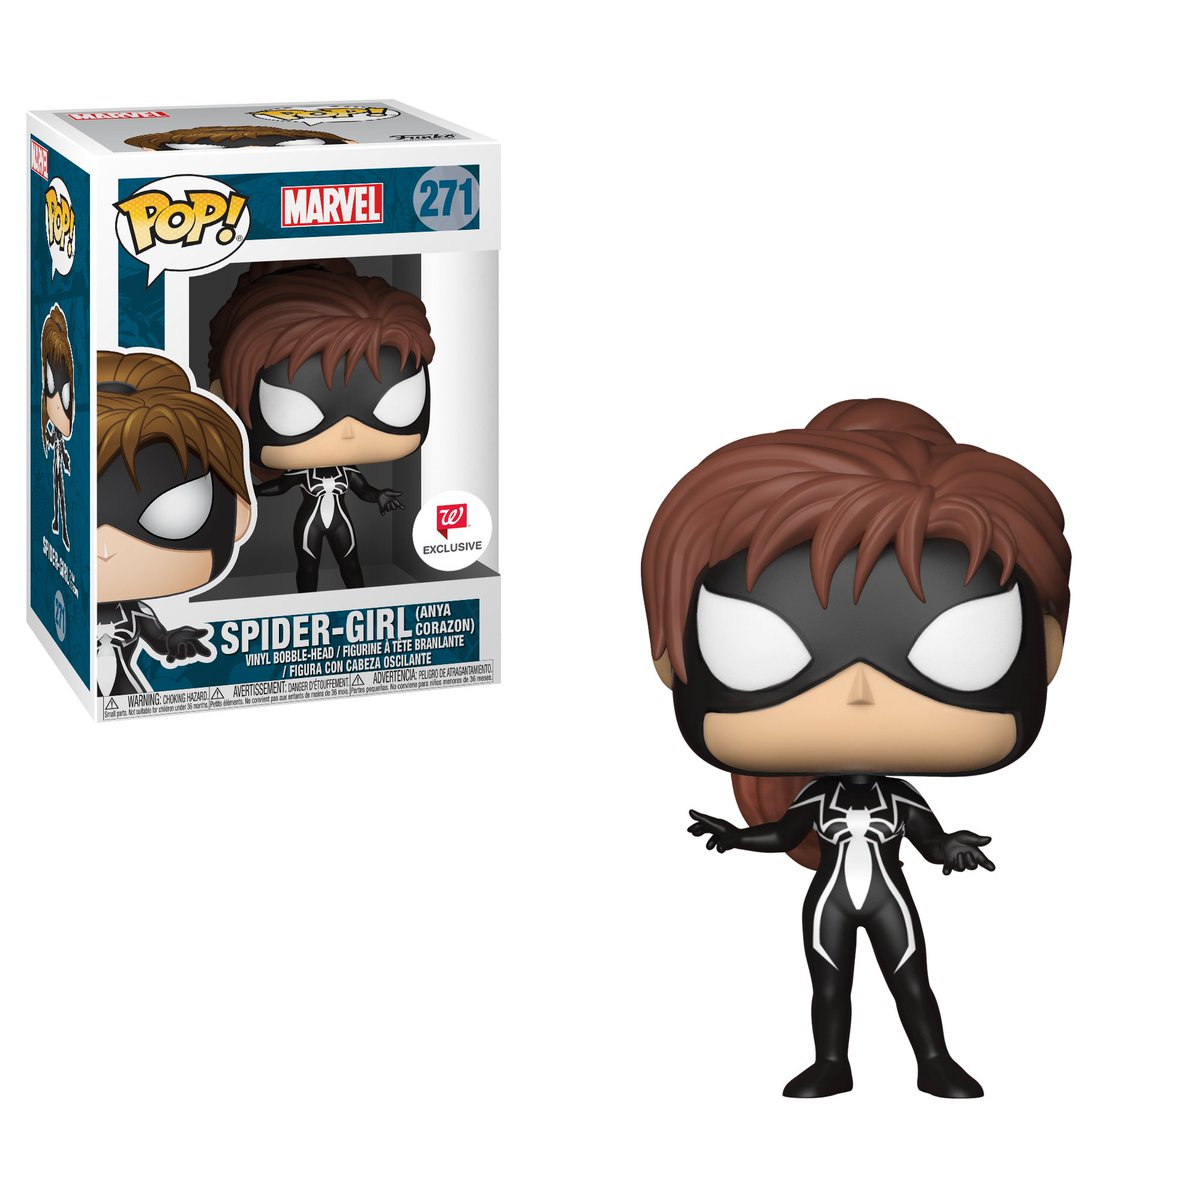 Funko On Twitter Available Now Walgreens Marvel Spider